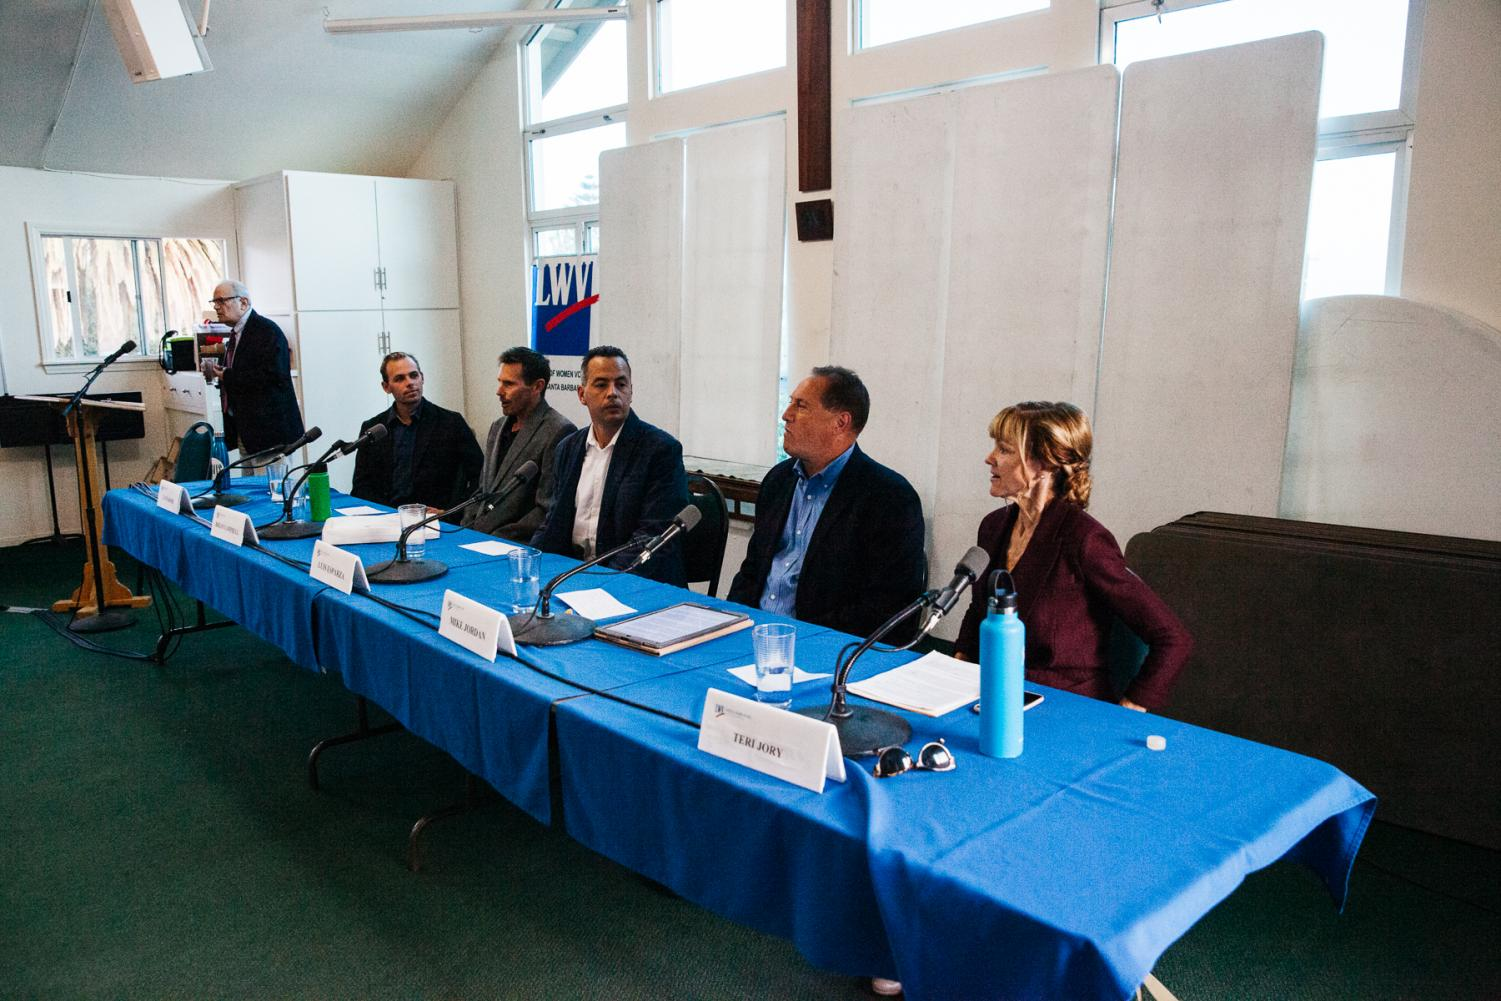 Candidates for the District 2 City Council seat gathered to answer community questions on Thursday, Oct. 10, 2019, in the Free Methodist Church on the Mesa in Santa Barbara, Calif. From right, Teri Jory, Mike Jordan, Luis Esparza, Brian Campbell and Travis Boise are running to take over the District 2 seat.